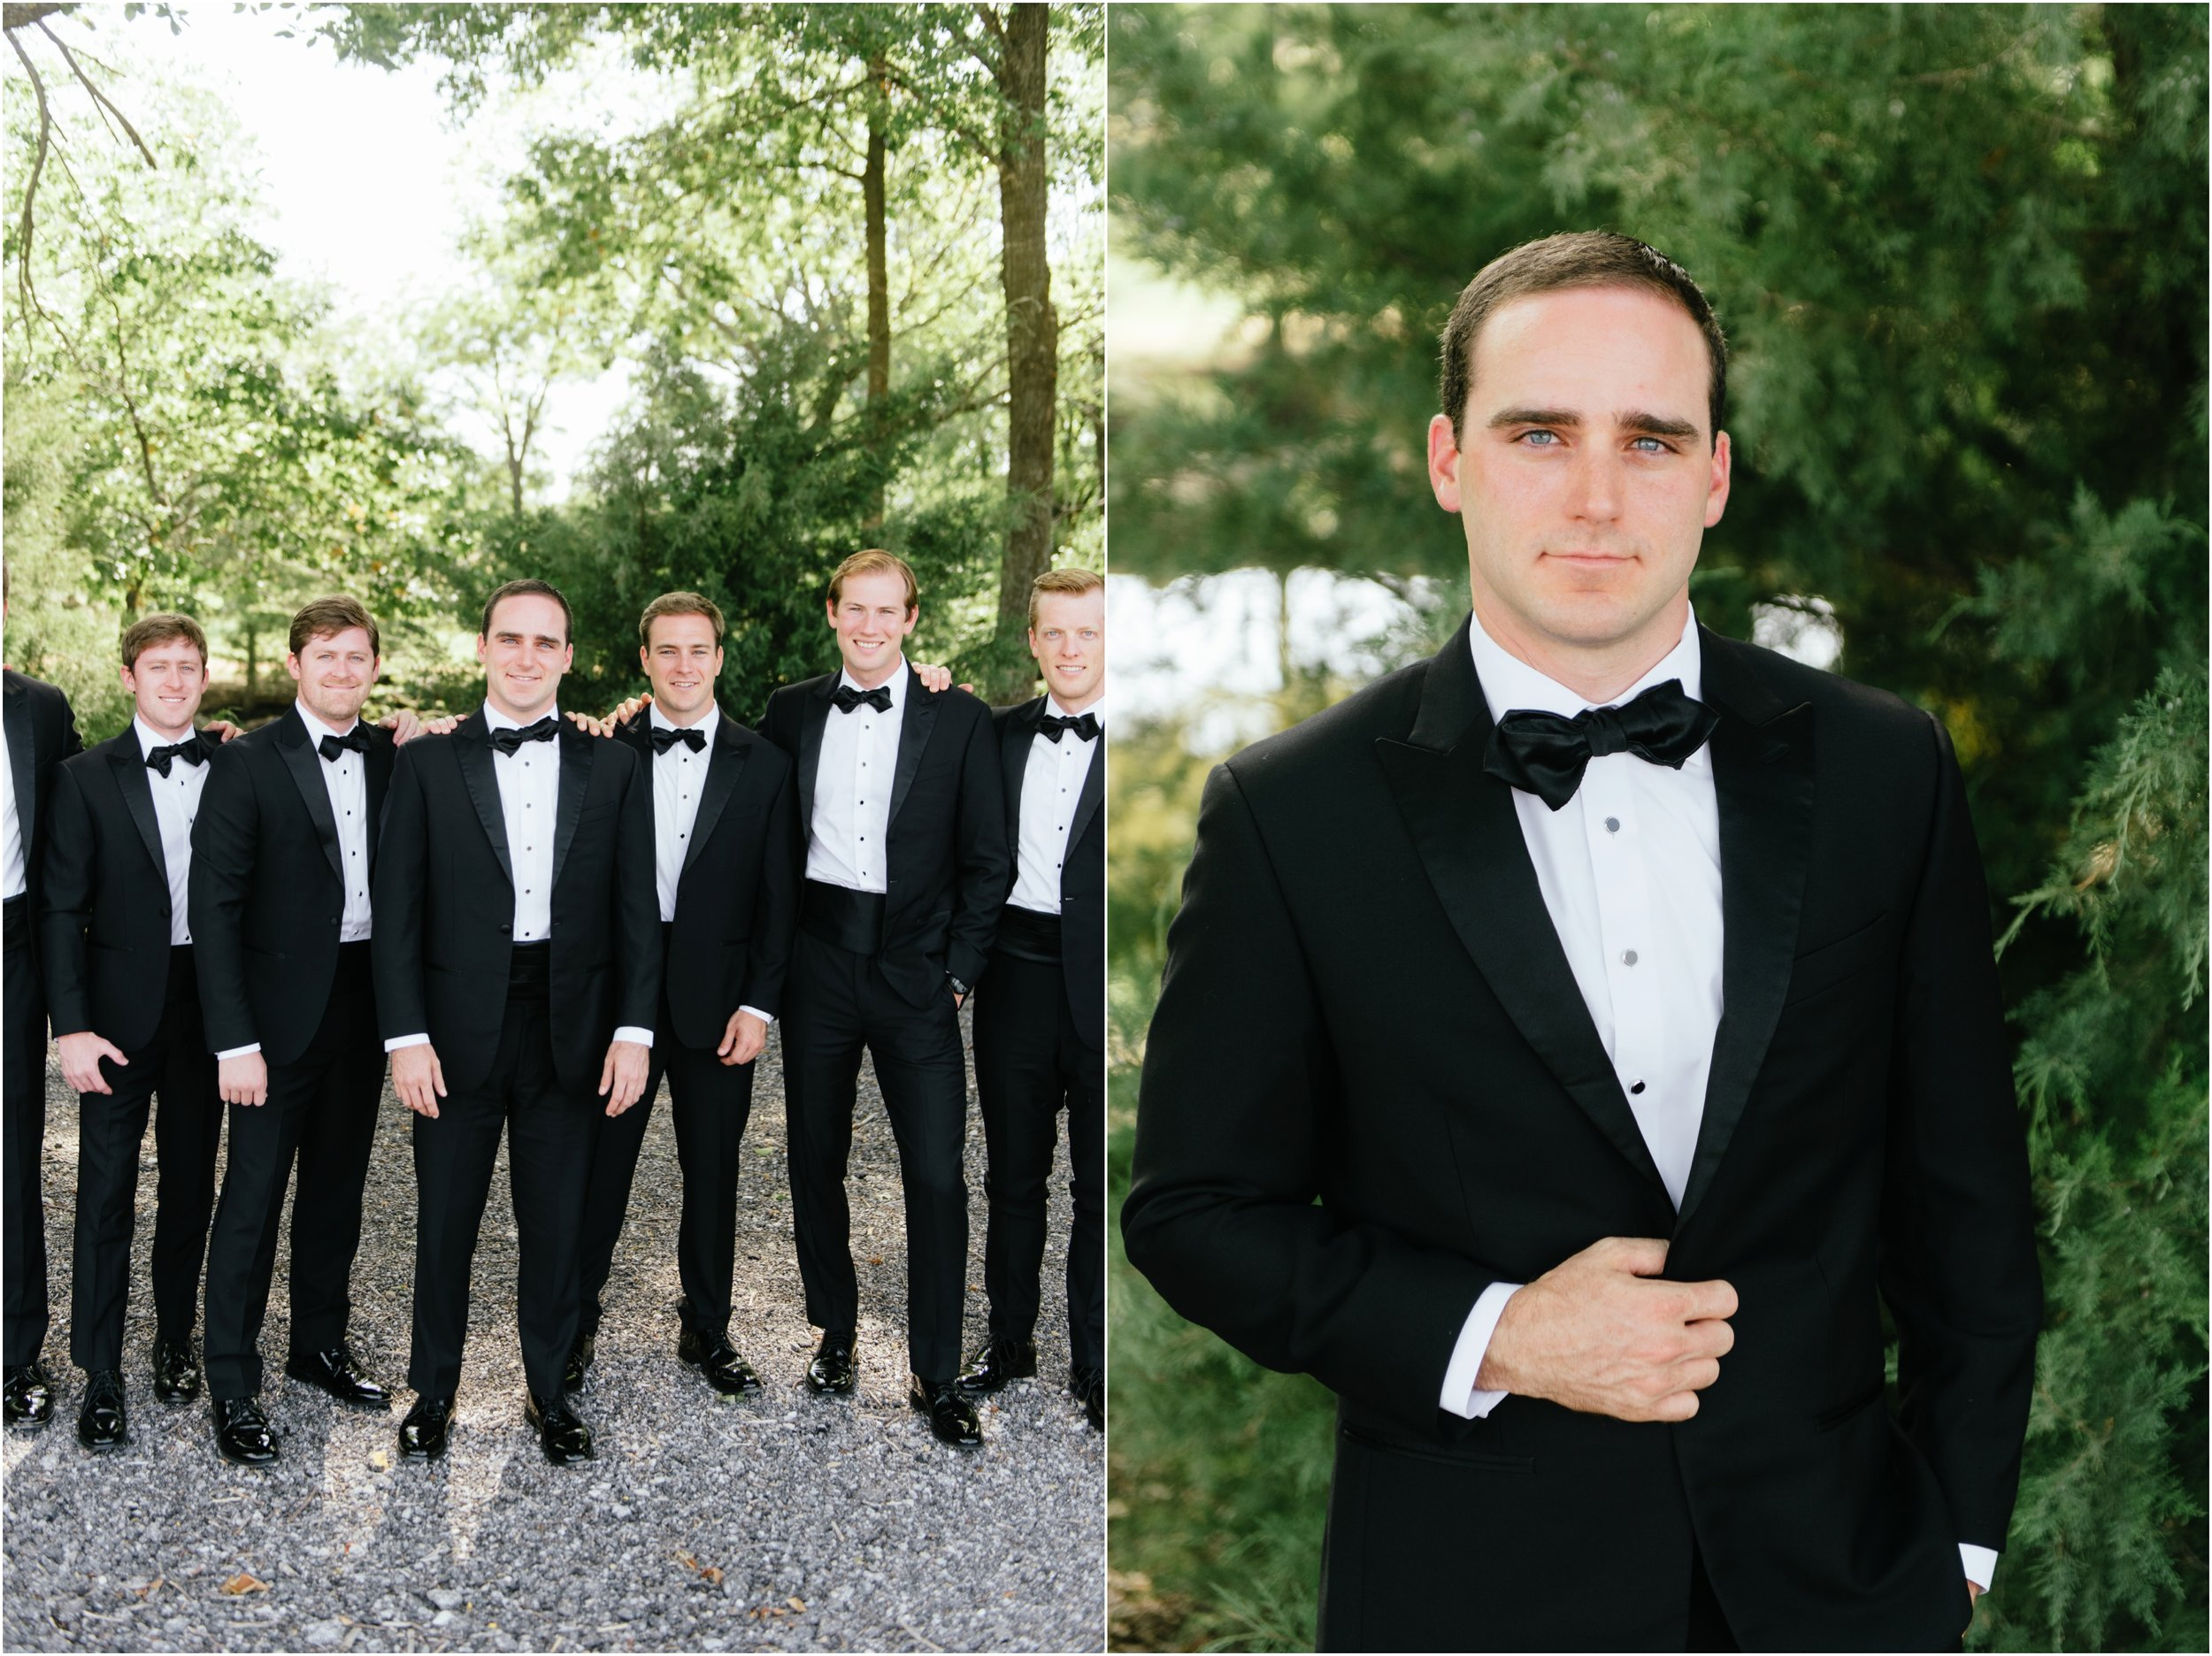 dallasweddingphotographer_fortworthweddingphotographer_texasweddingphotographer_mattandjulieweddings_whiterocklakewedding_KayleighClay_0016.jpg